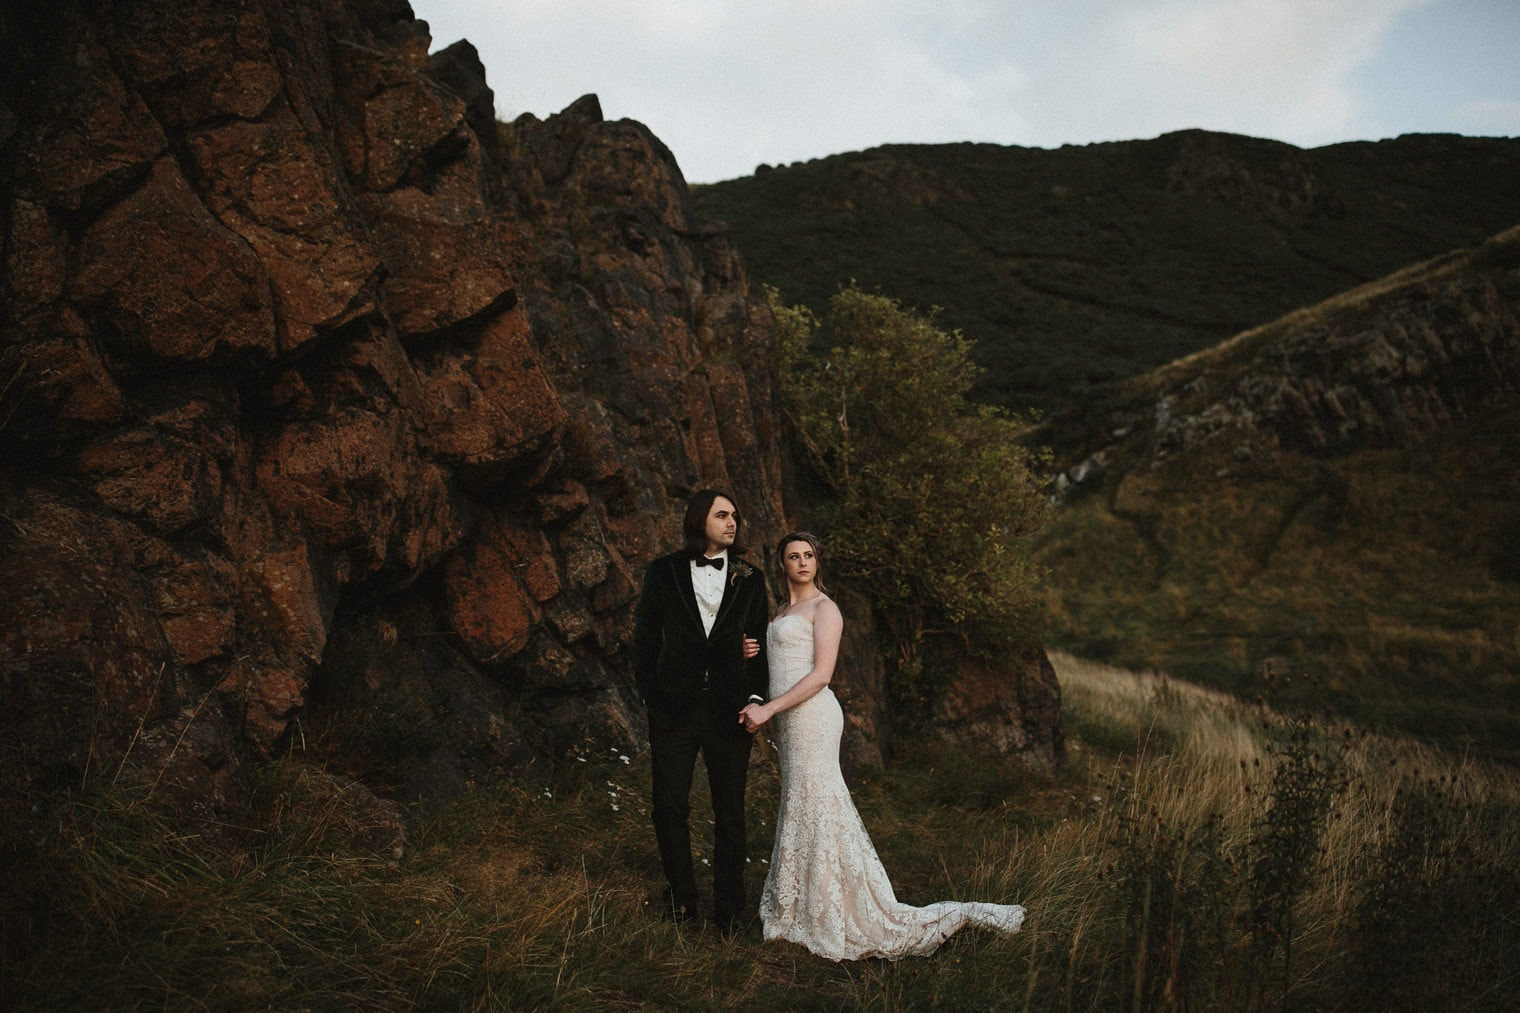 Bride and Groom in Holyrood Park after their Edinburgh elopement at St. Anthony's Chapel